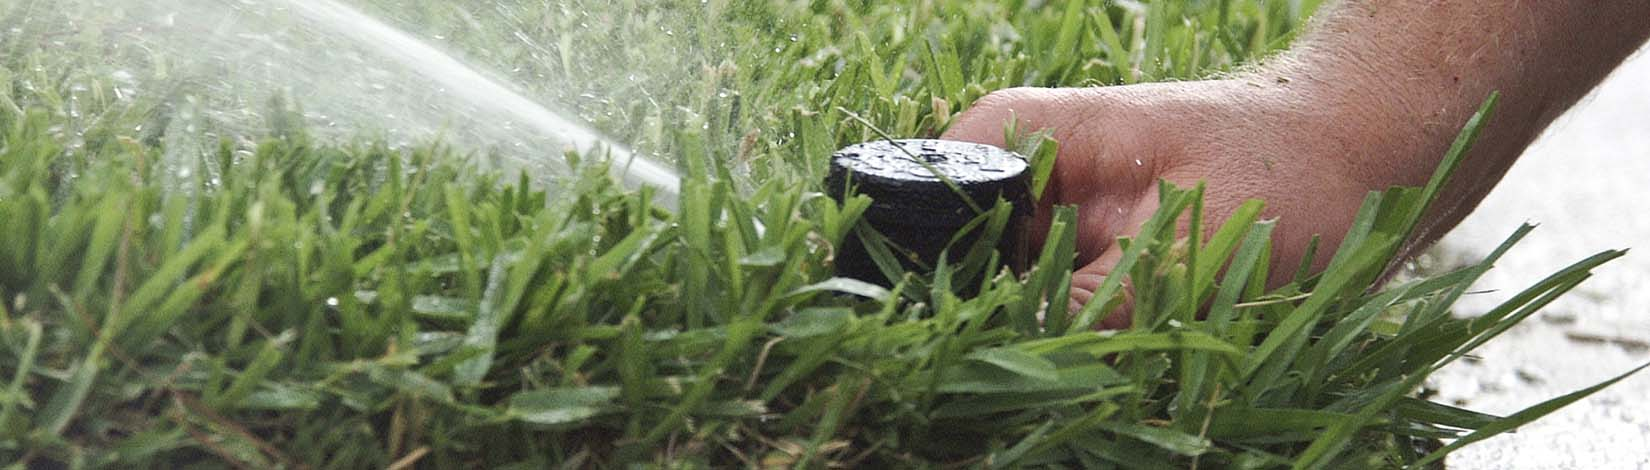 Sprinkler head shooting water for lawn irrigation